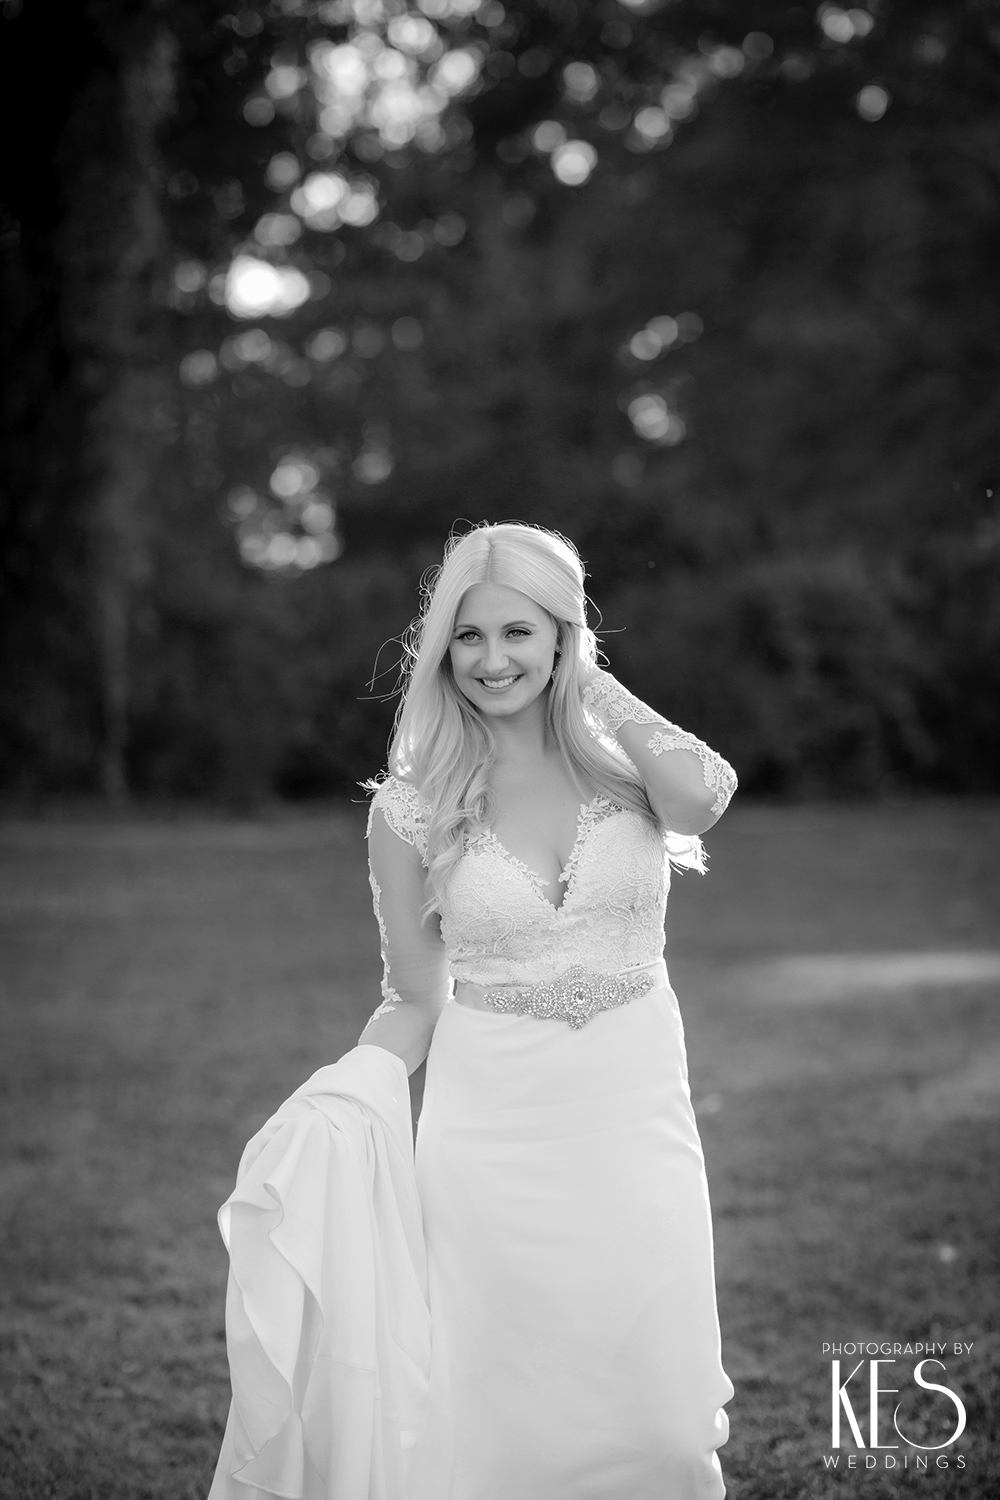 Marlsgate_Bridals_KES_Weddings_25.JPG